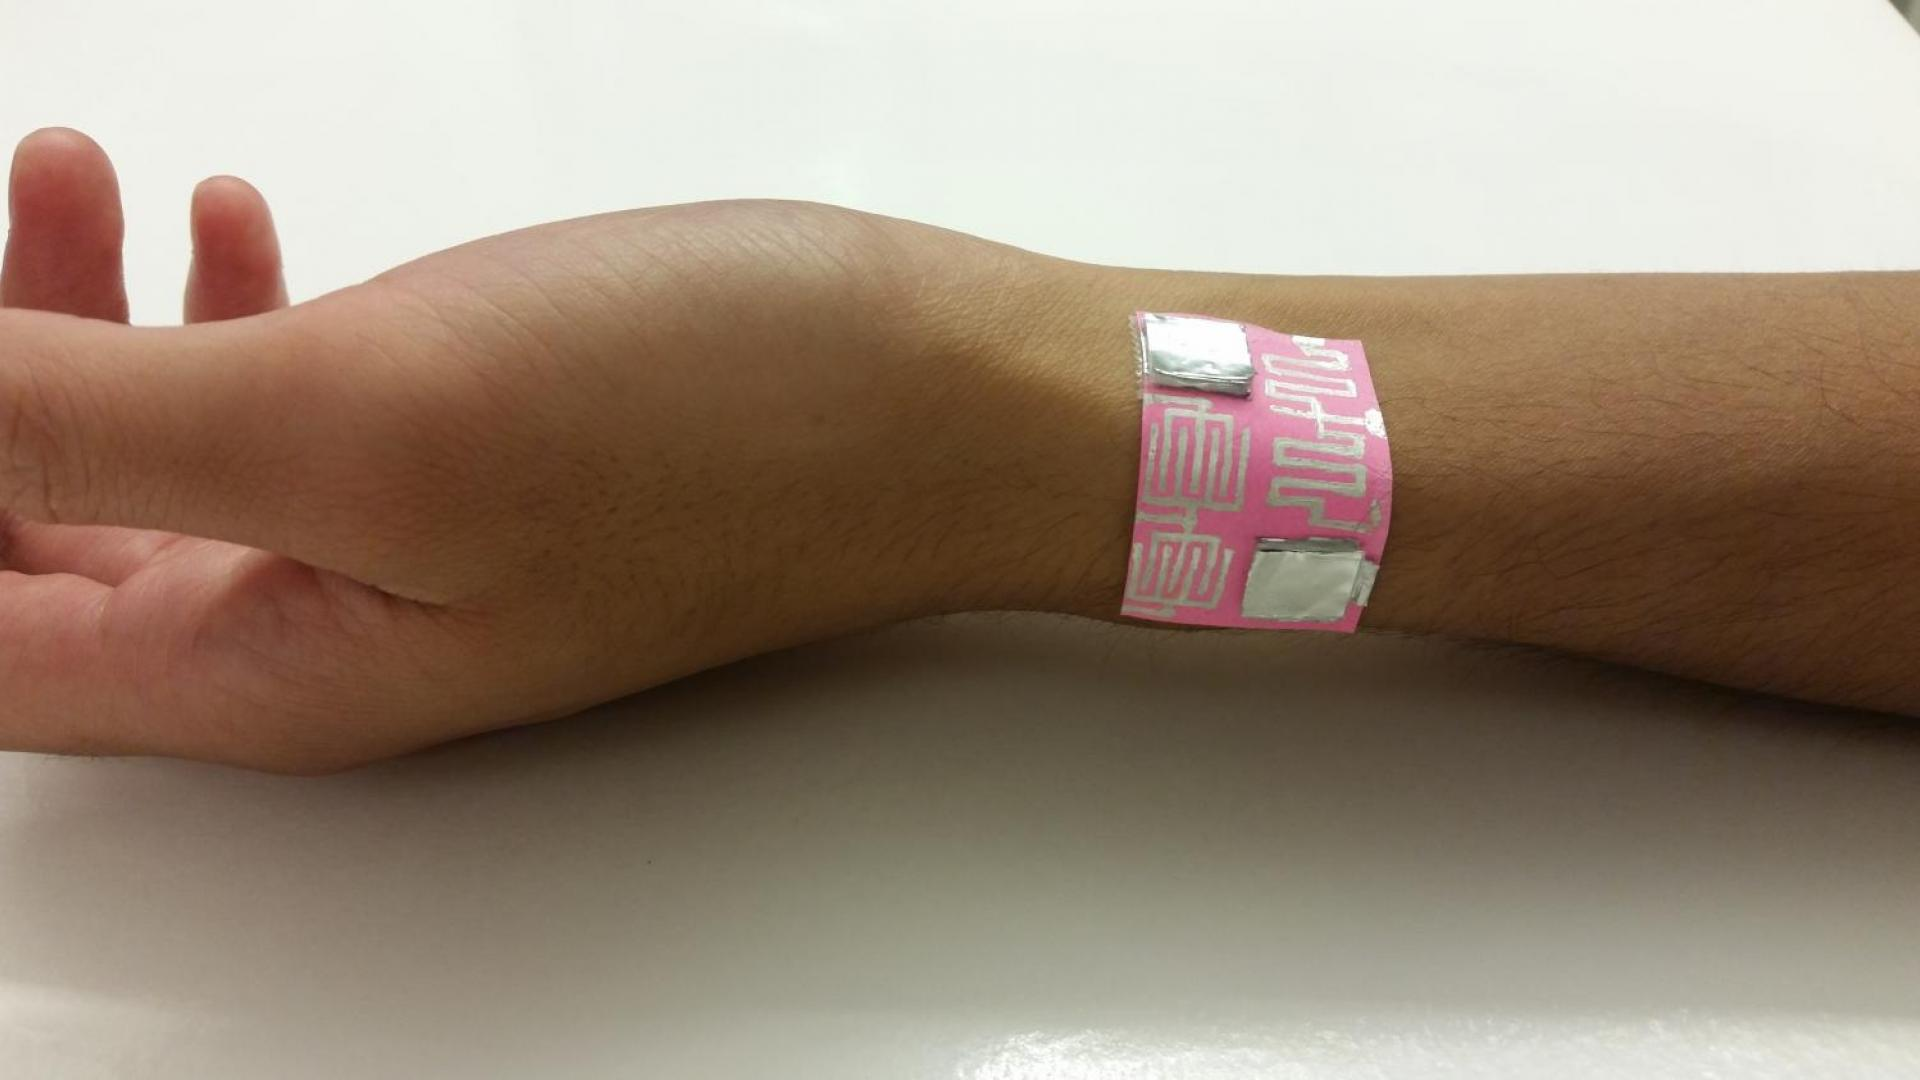 KAUST CEMSE EE MMH LAB FABLAB Wrist Sensor For Health Screening